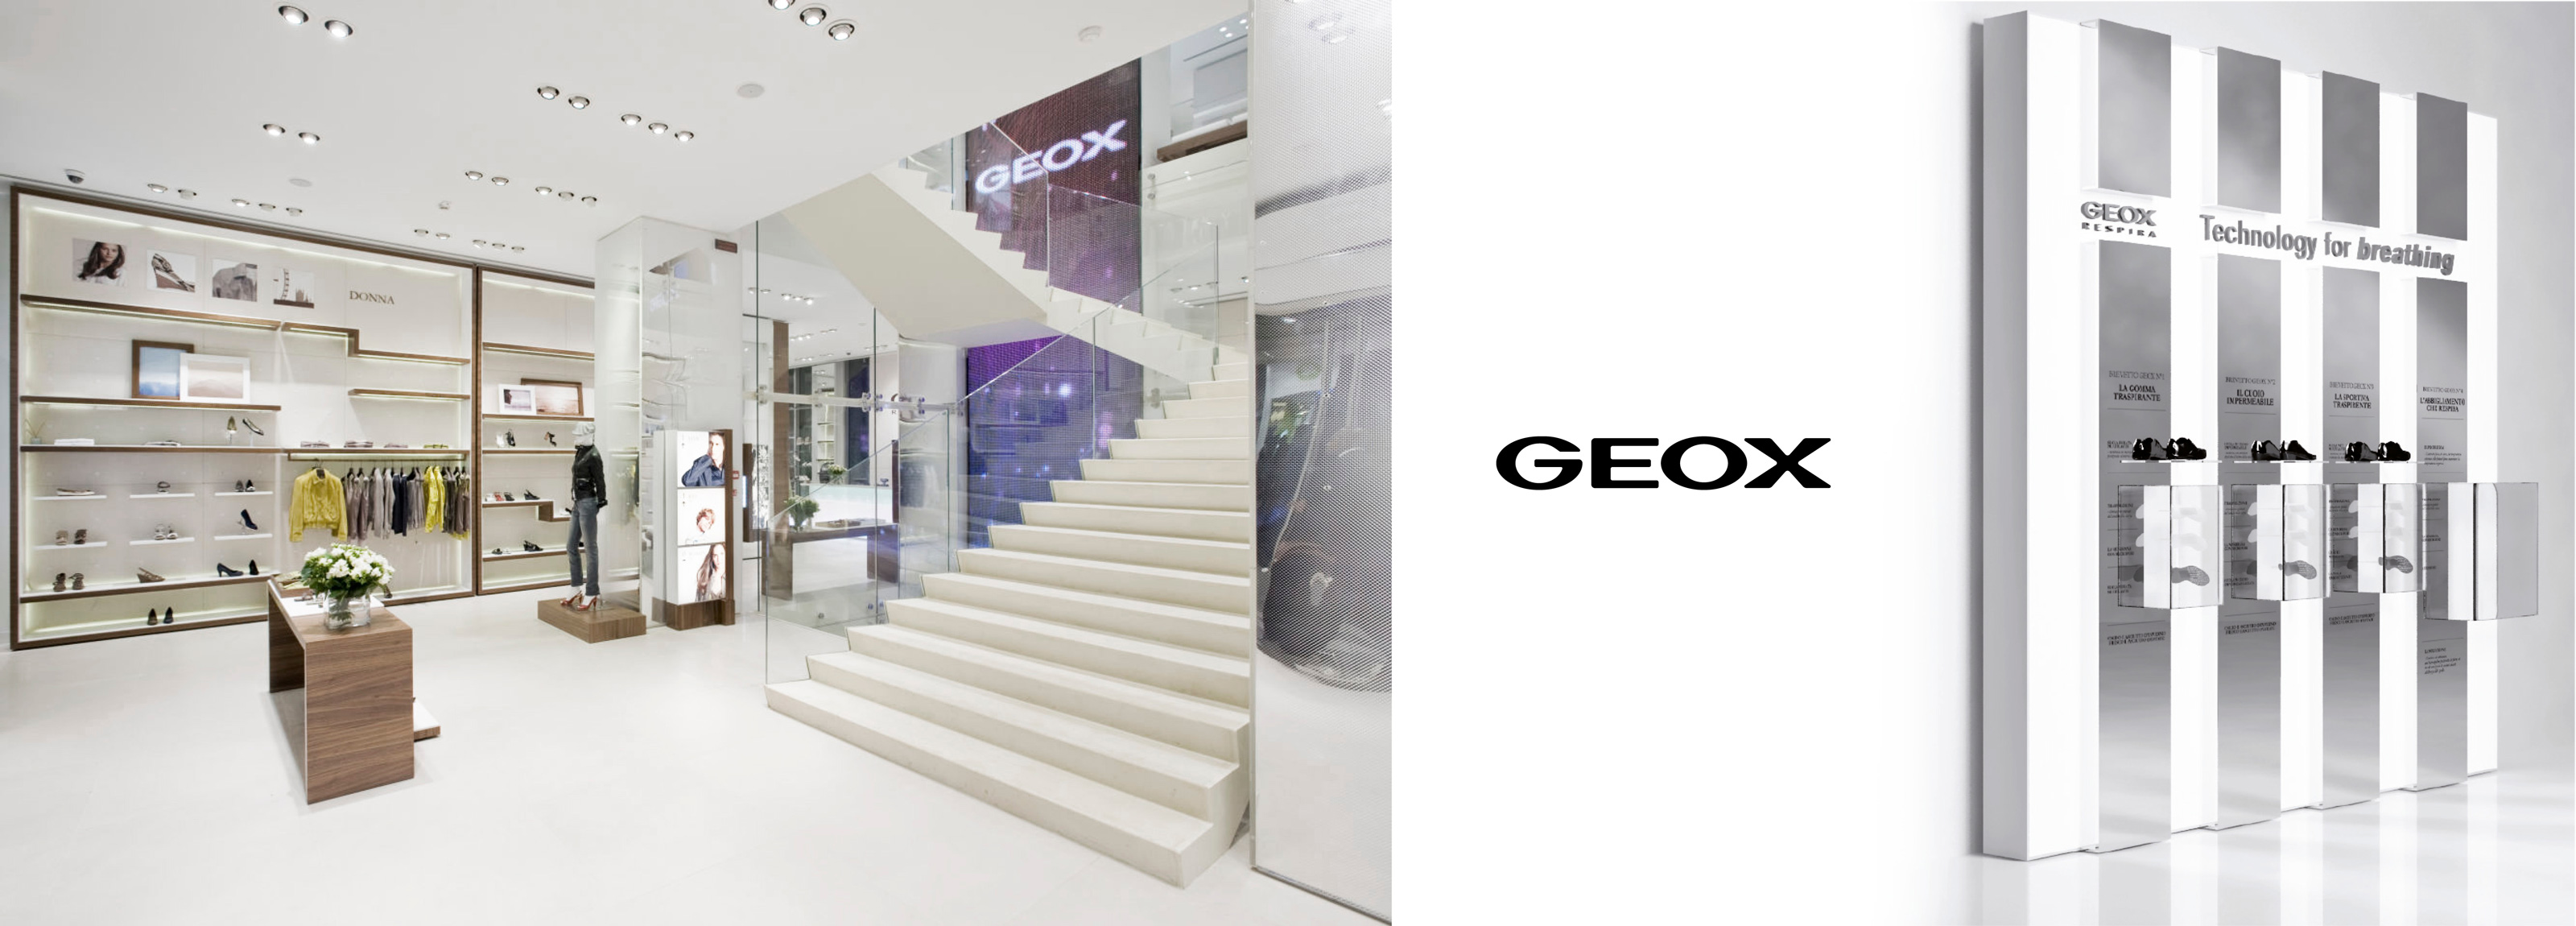 Merchandising e visual design realizzati da Hangar Design Group per i negozi monomarca Geox